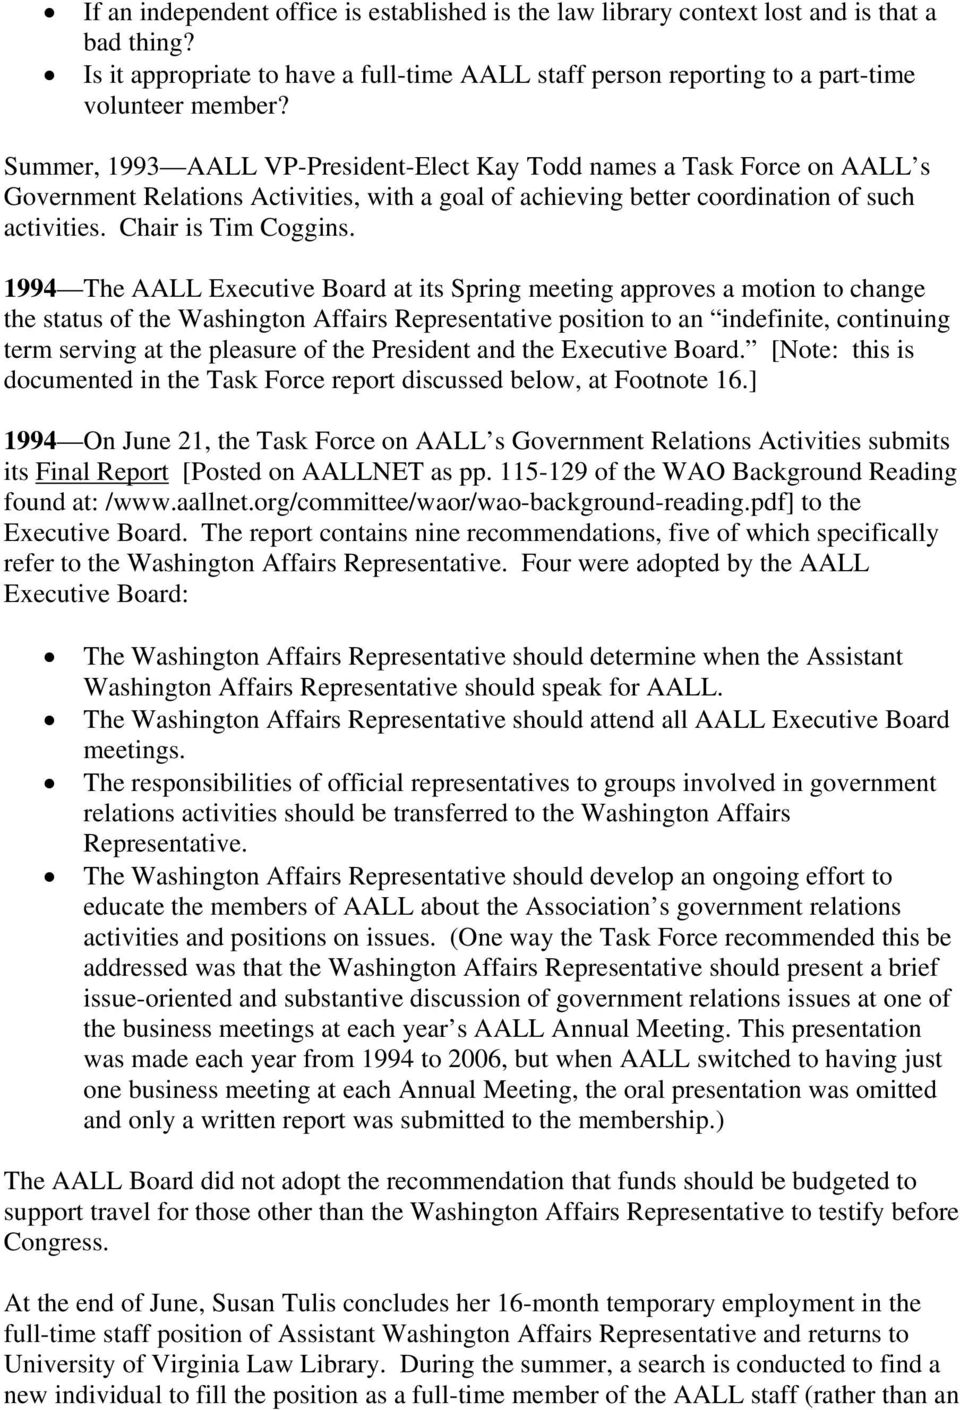 1994 The AALL Executive Board at its Spring meeting approves a motion to change the status of the Washington Affairs Representative position to an indefinite, continuing term serving at the pleasure